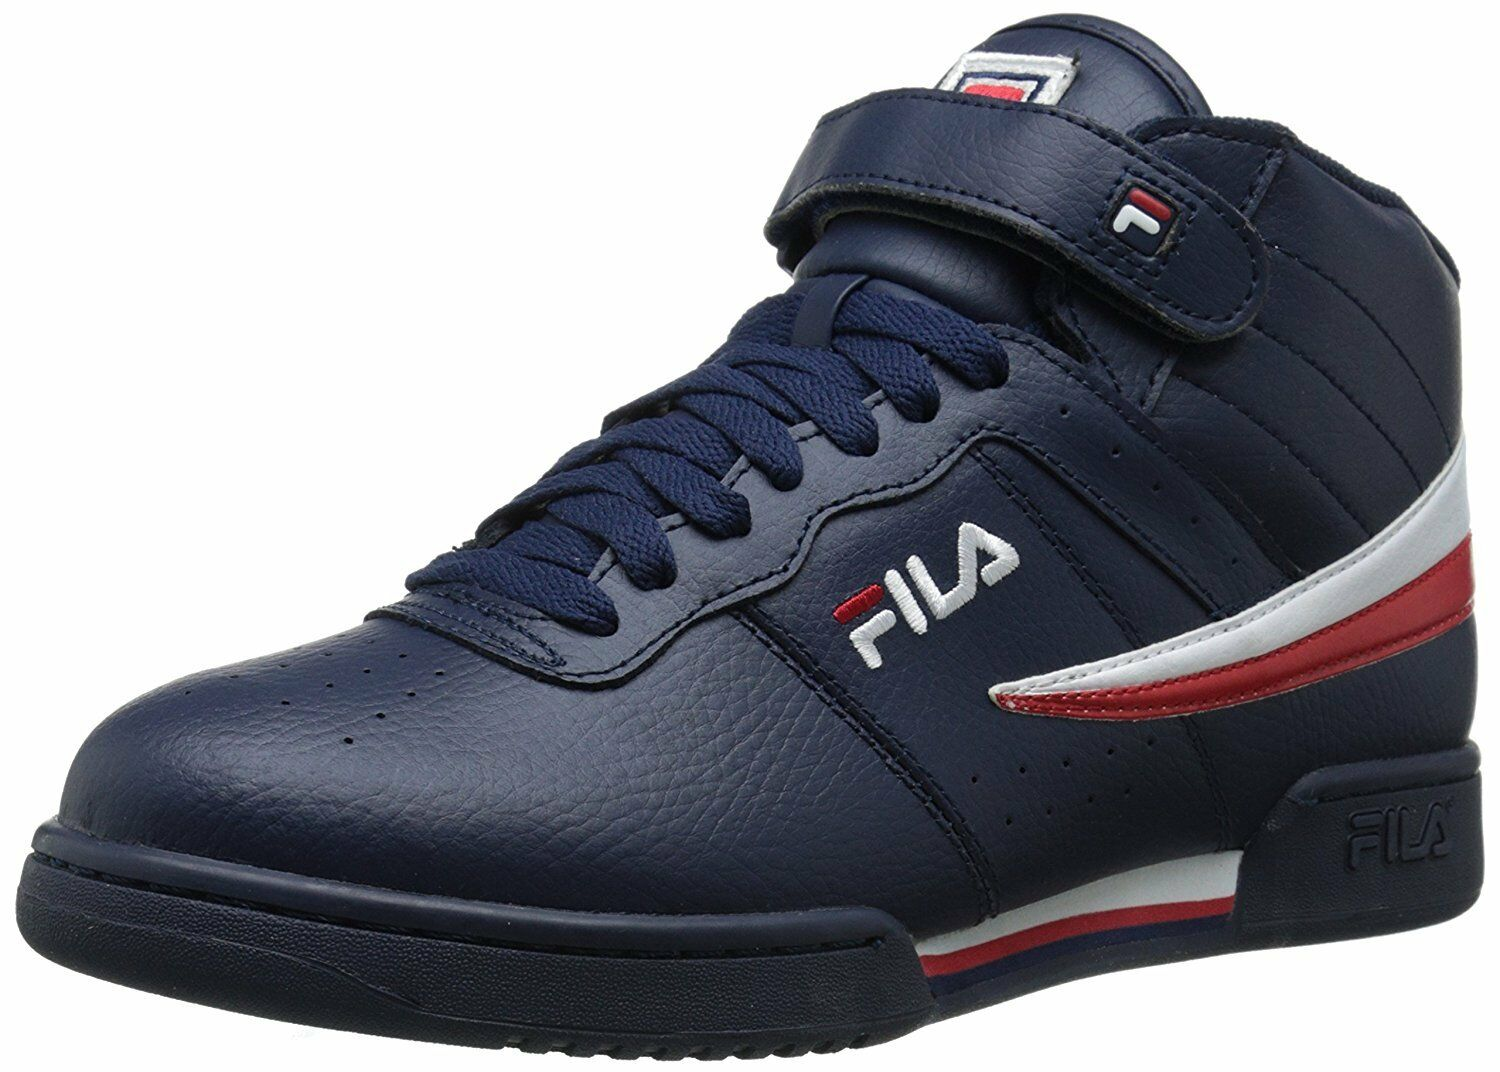 Fila Mens F-13V Lea/Syn Fashion Sneakers, Navy/White Red, 7 M US Comfortable and good-looking